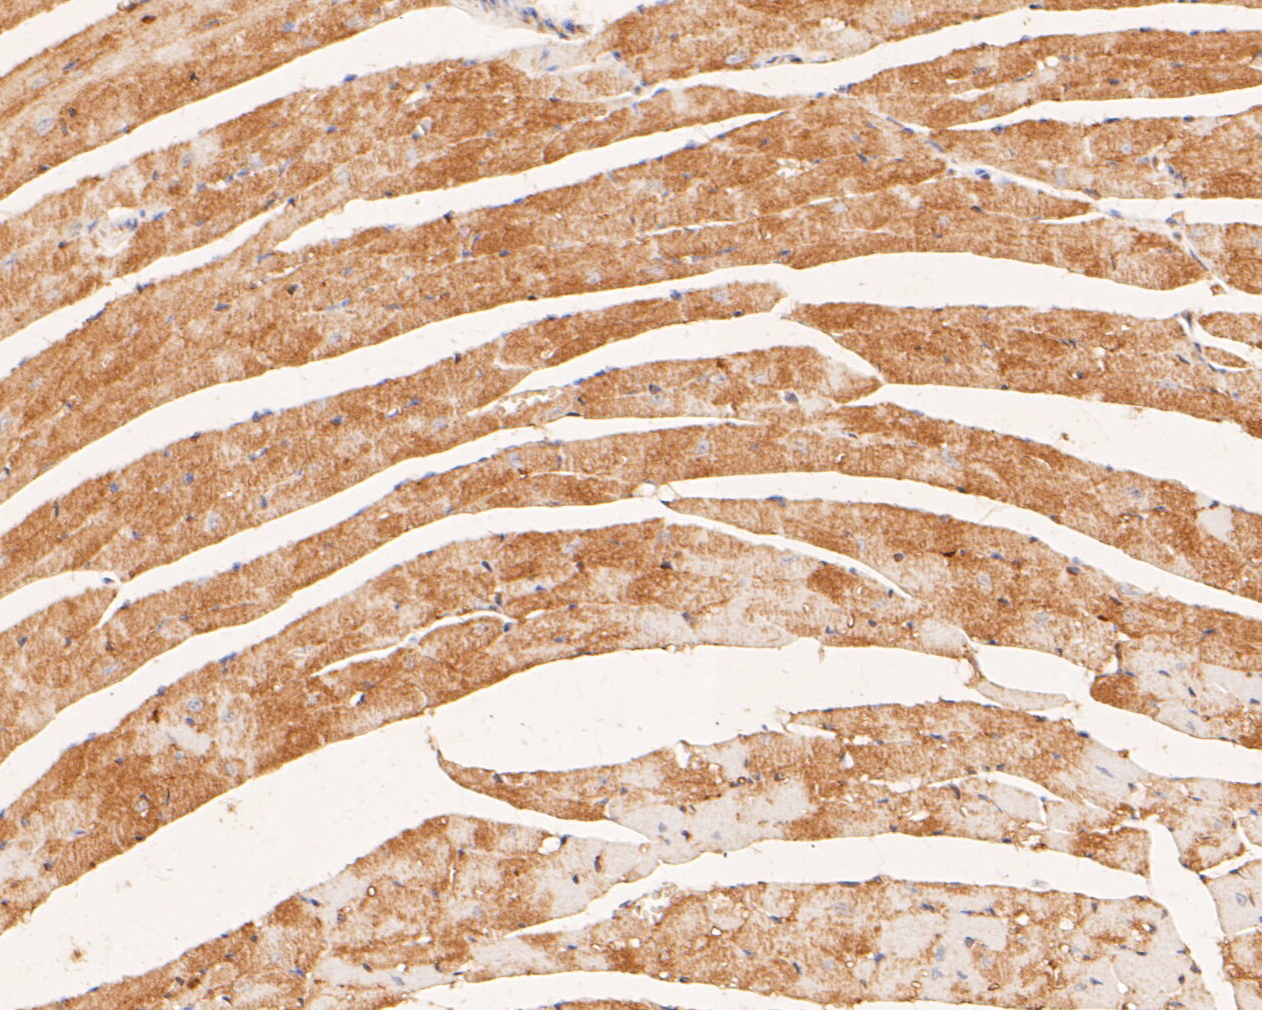 Immunohistochemical analysis of paraffin-embedded mouse heart tissue using anti-P2X6 antibody. The section was pre-treated using heat mediated antigen retrieval with Tris-EDTA buffer (pH 8.0-8.4) for 20 minutes.The tissues were blocked in 5% BSA for 30 minutes at room temperature, washed with ddH2O and PBS, and then probed with the primary antibody (ER1901-49, 1/50) for 30 minutes at room temperature. The detection was performed using an HRP conjugated compact polymer system. DAB was used as the chromogen. Tissues were counterstained with hematoxylin and mounted with DPX.